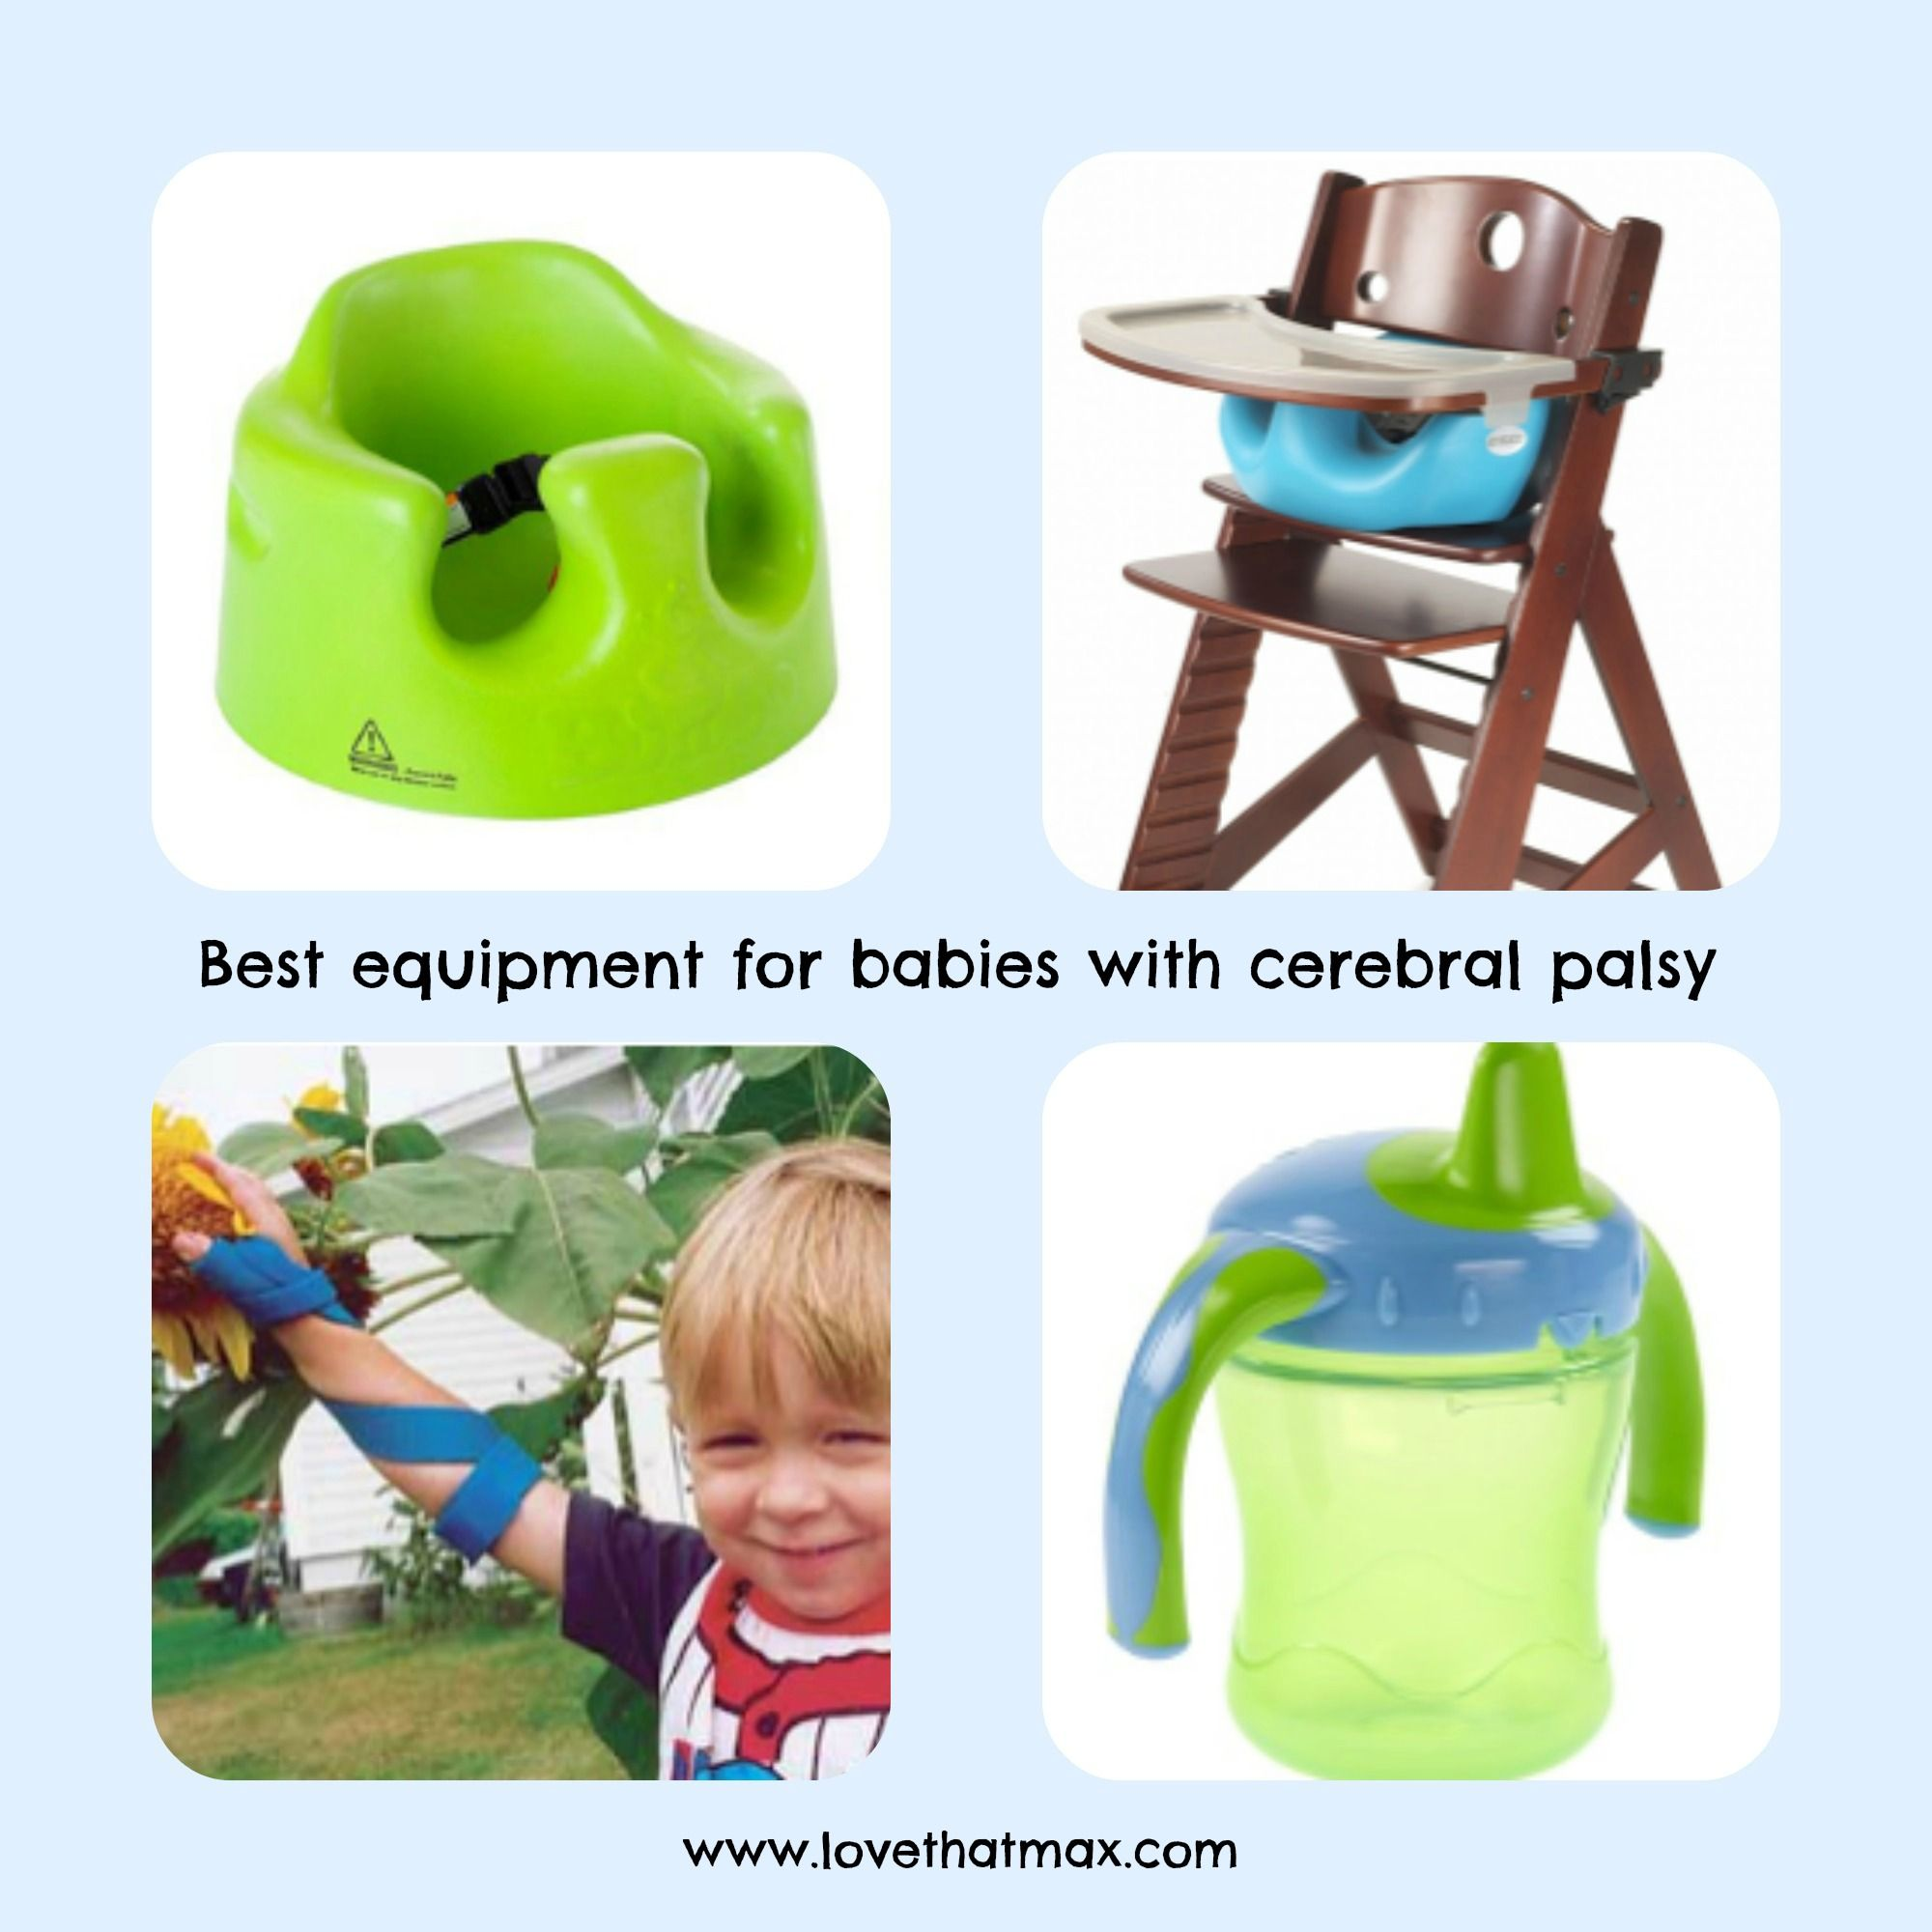 Best equipment for babies with cerebral palsy